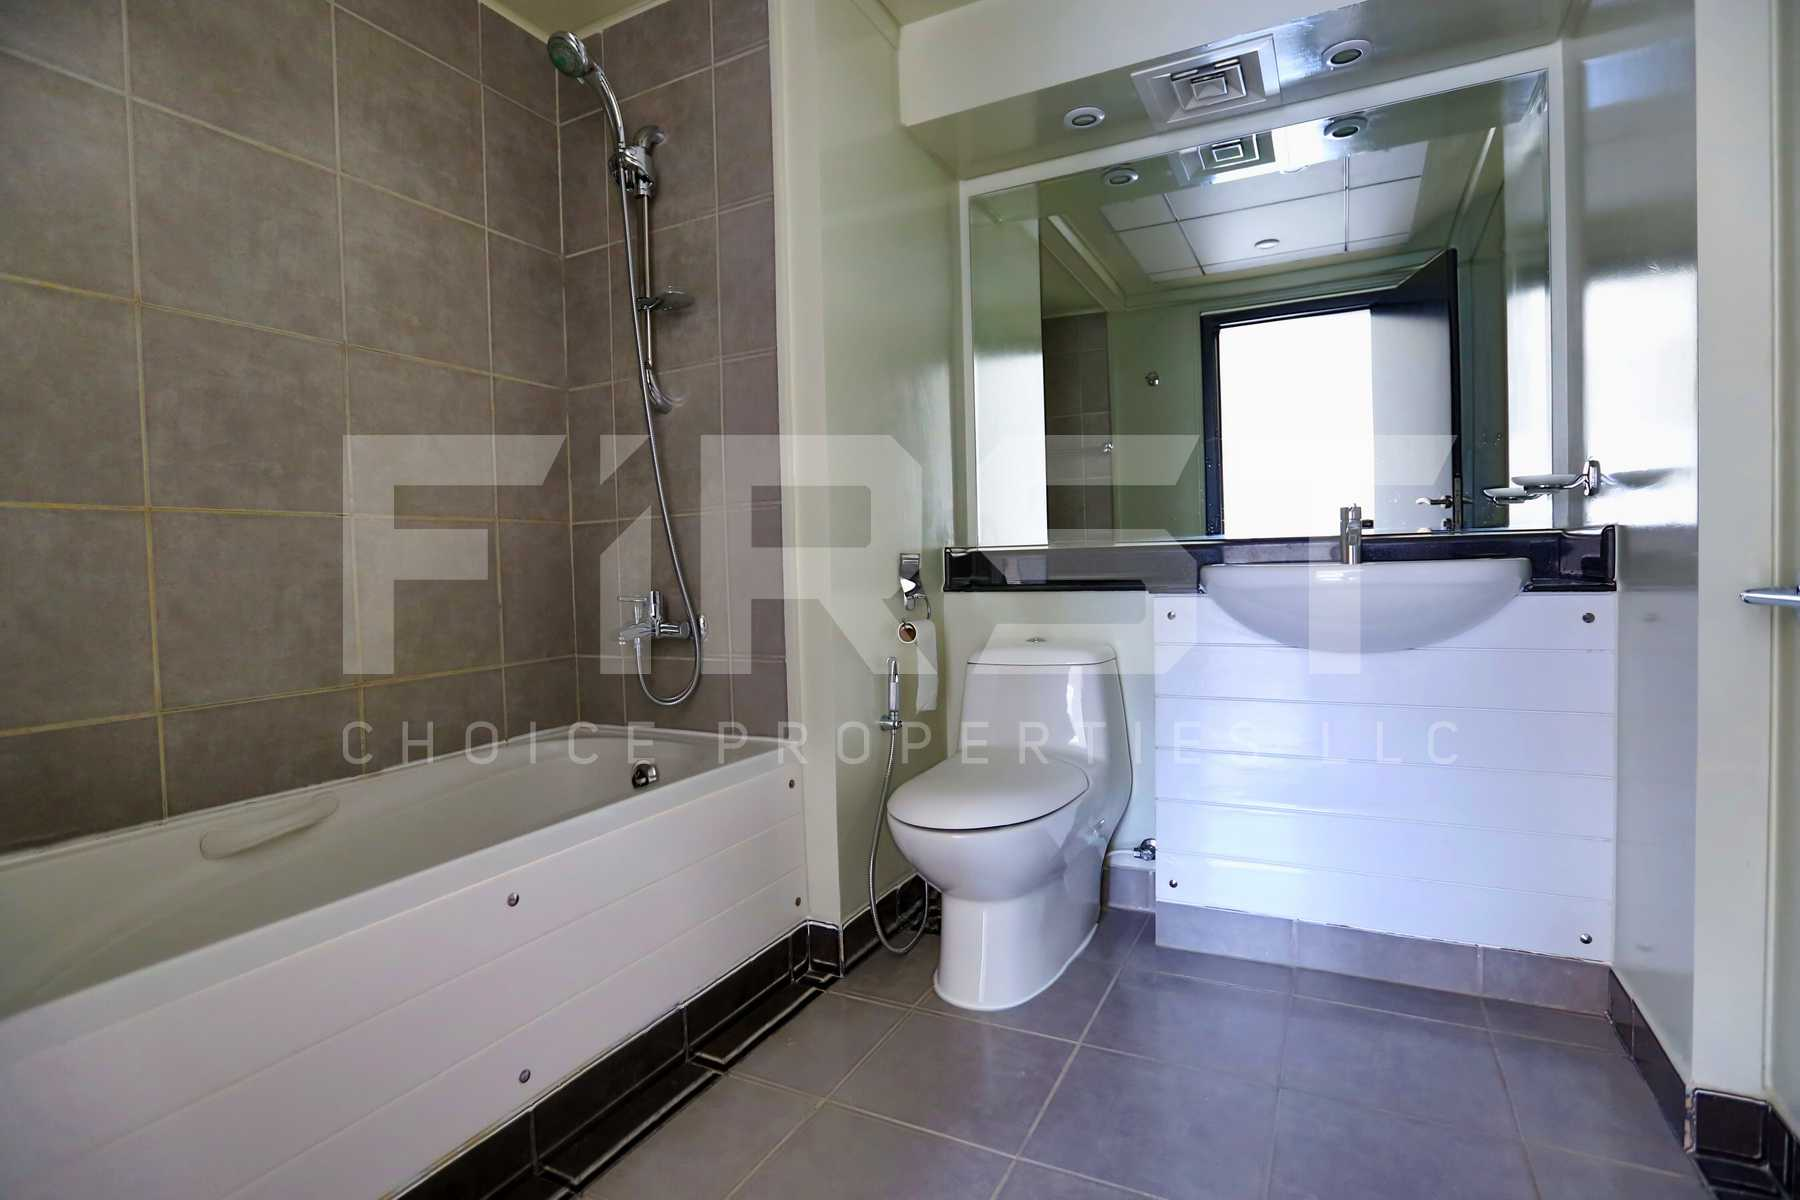 Internal Photo of 2 Bedroom Apartment Type B in Al Reef Downtown Al Reef Abu Dhabi UAE 114 sq.m 1227 (16).jpg